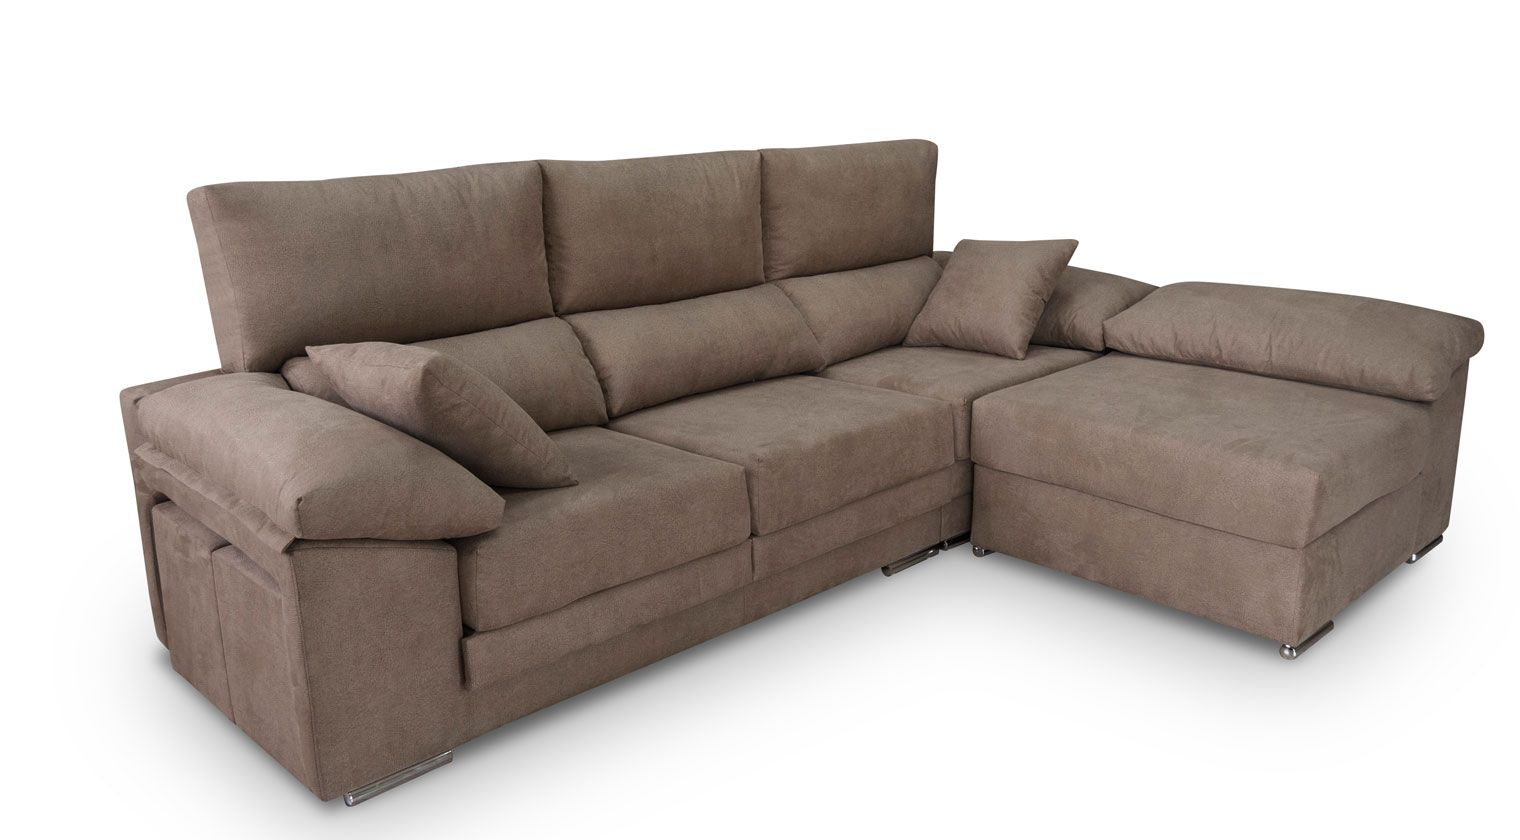 Comprar chaise longue kibo chaise longue 4 plazas for Sofas baratos asturias